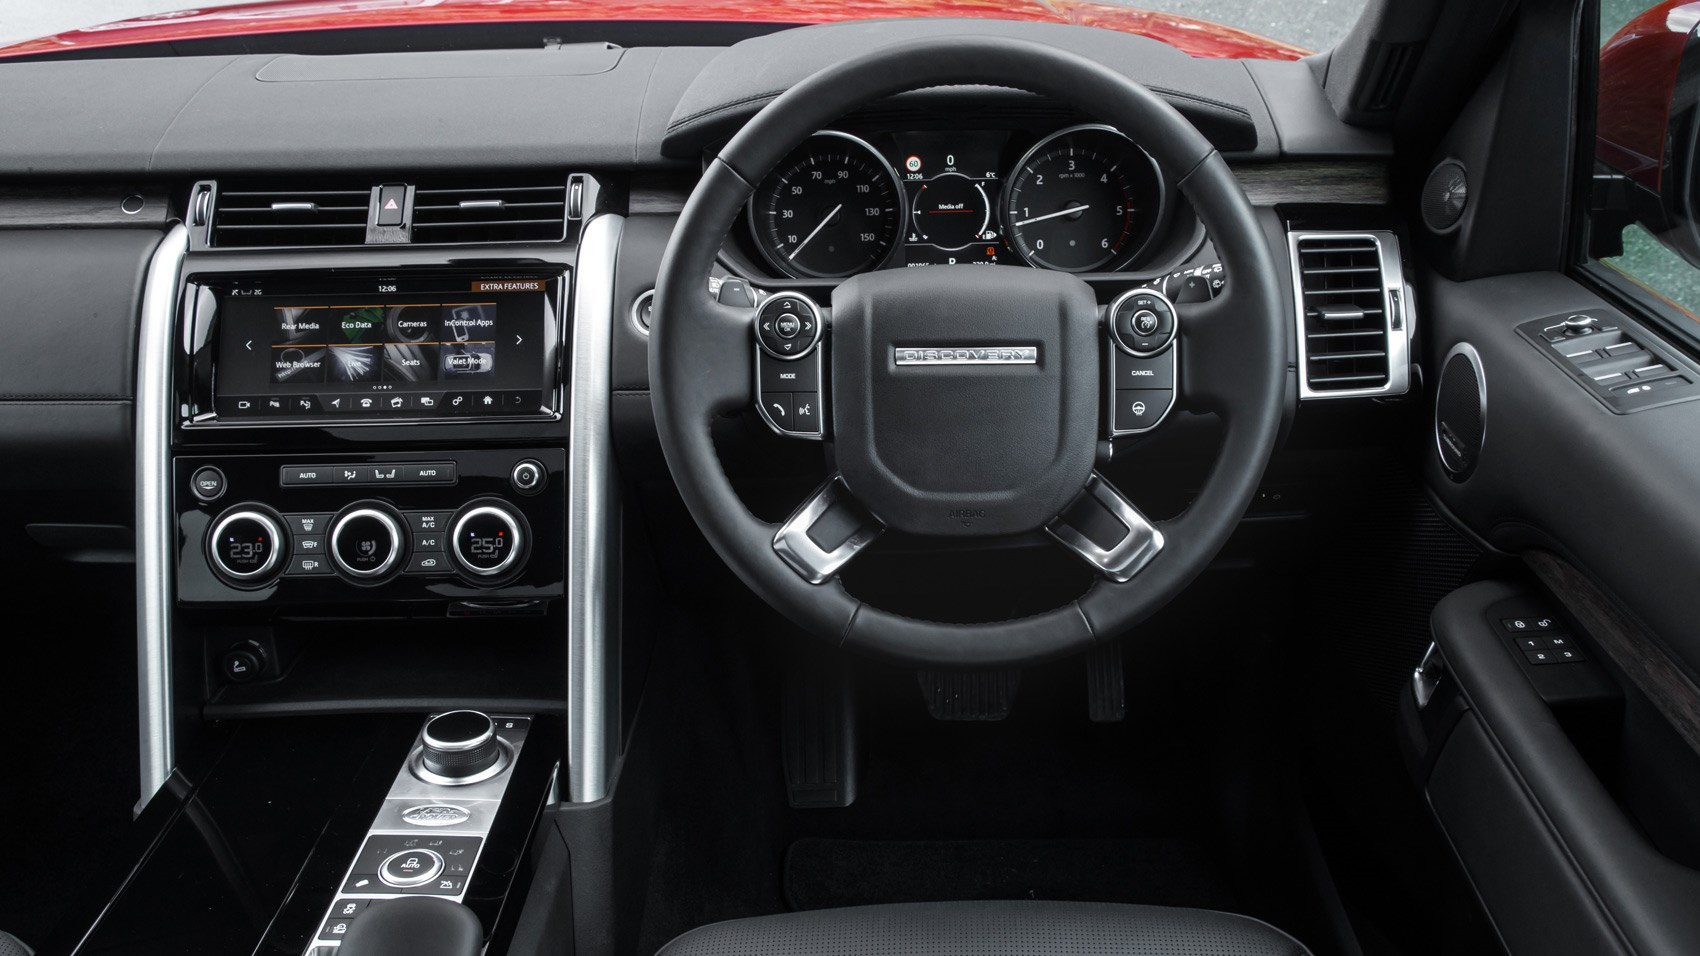 https://www.carmagazine.co.uk/Images/PageFiles/73162/LR_Discovery_sD4_03.jpg